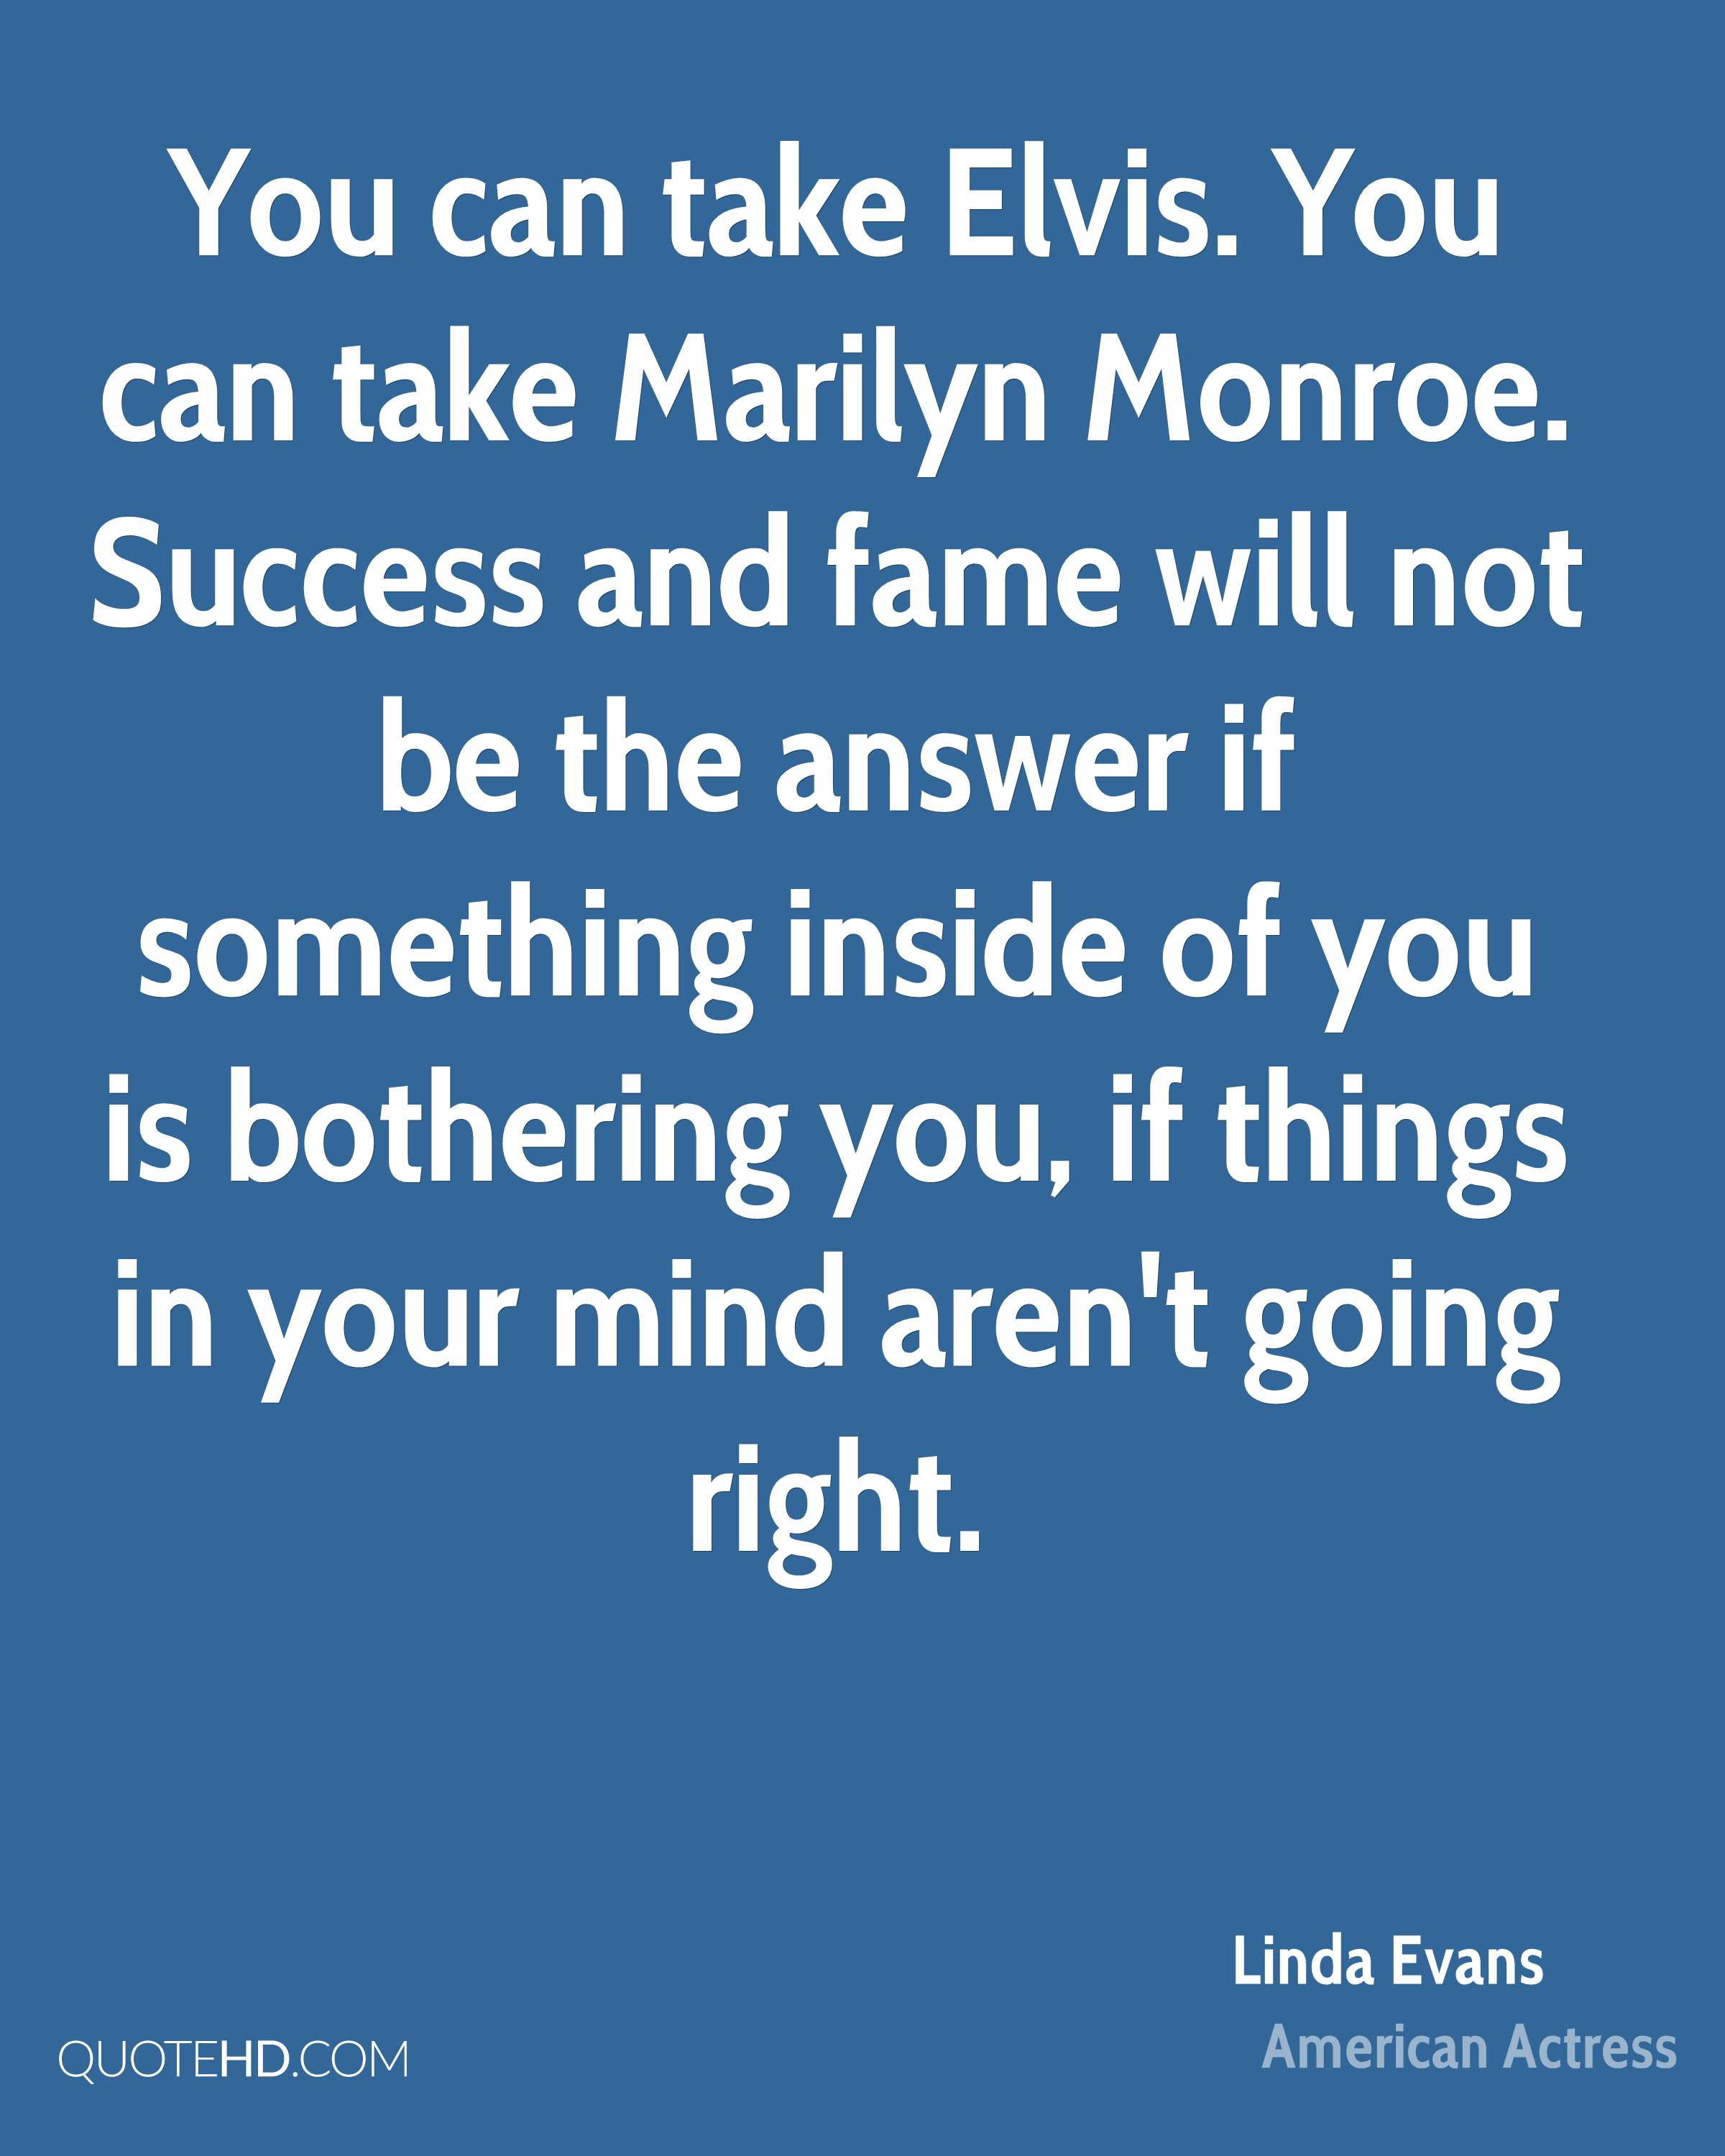 You can take Elvis. You can take Marilyn Monroe. Success and fame will not be the answer if something inside of you is bothering you, if things in your mind aren't going right.